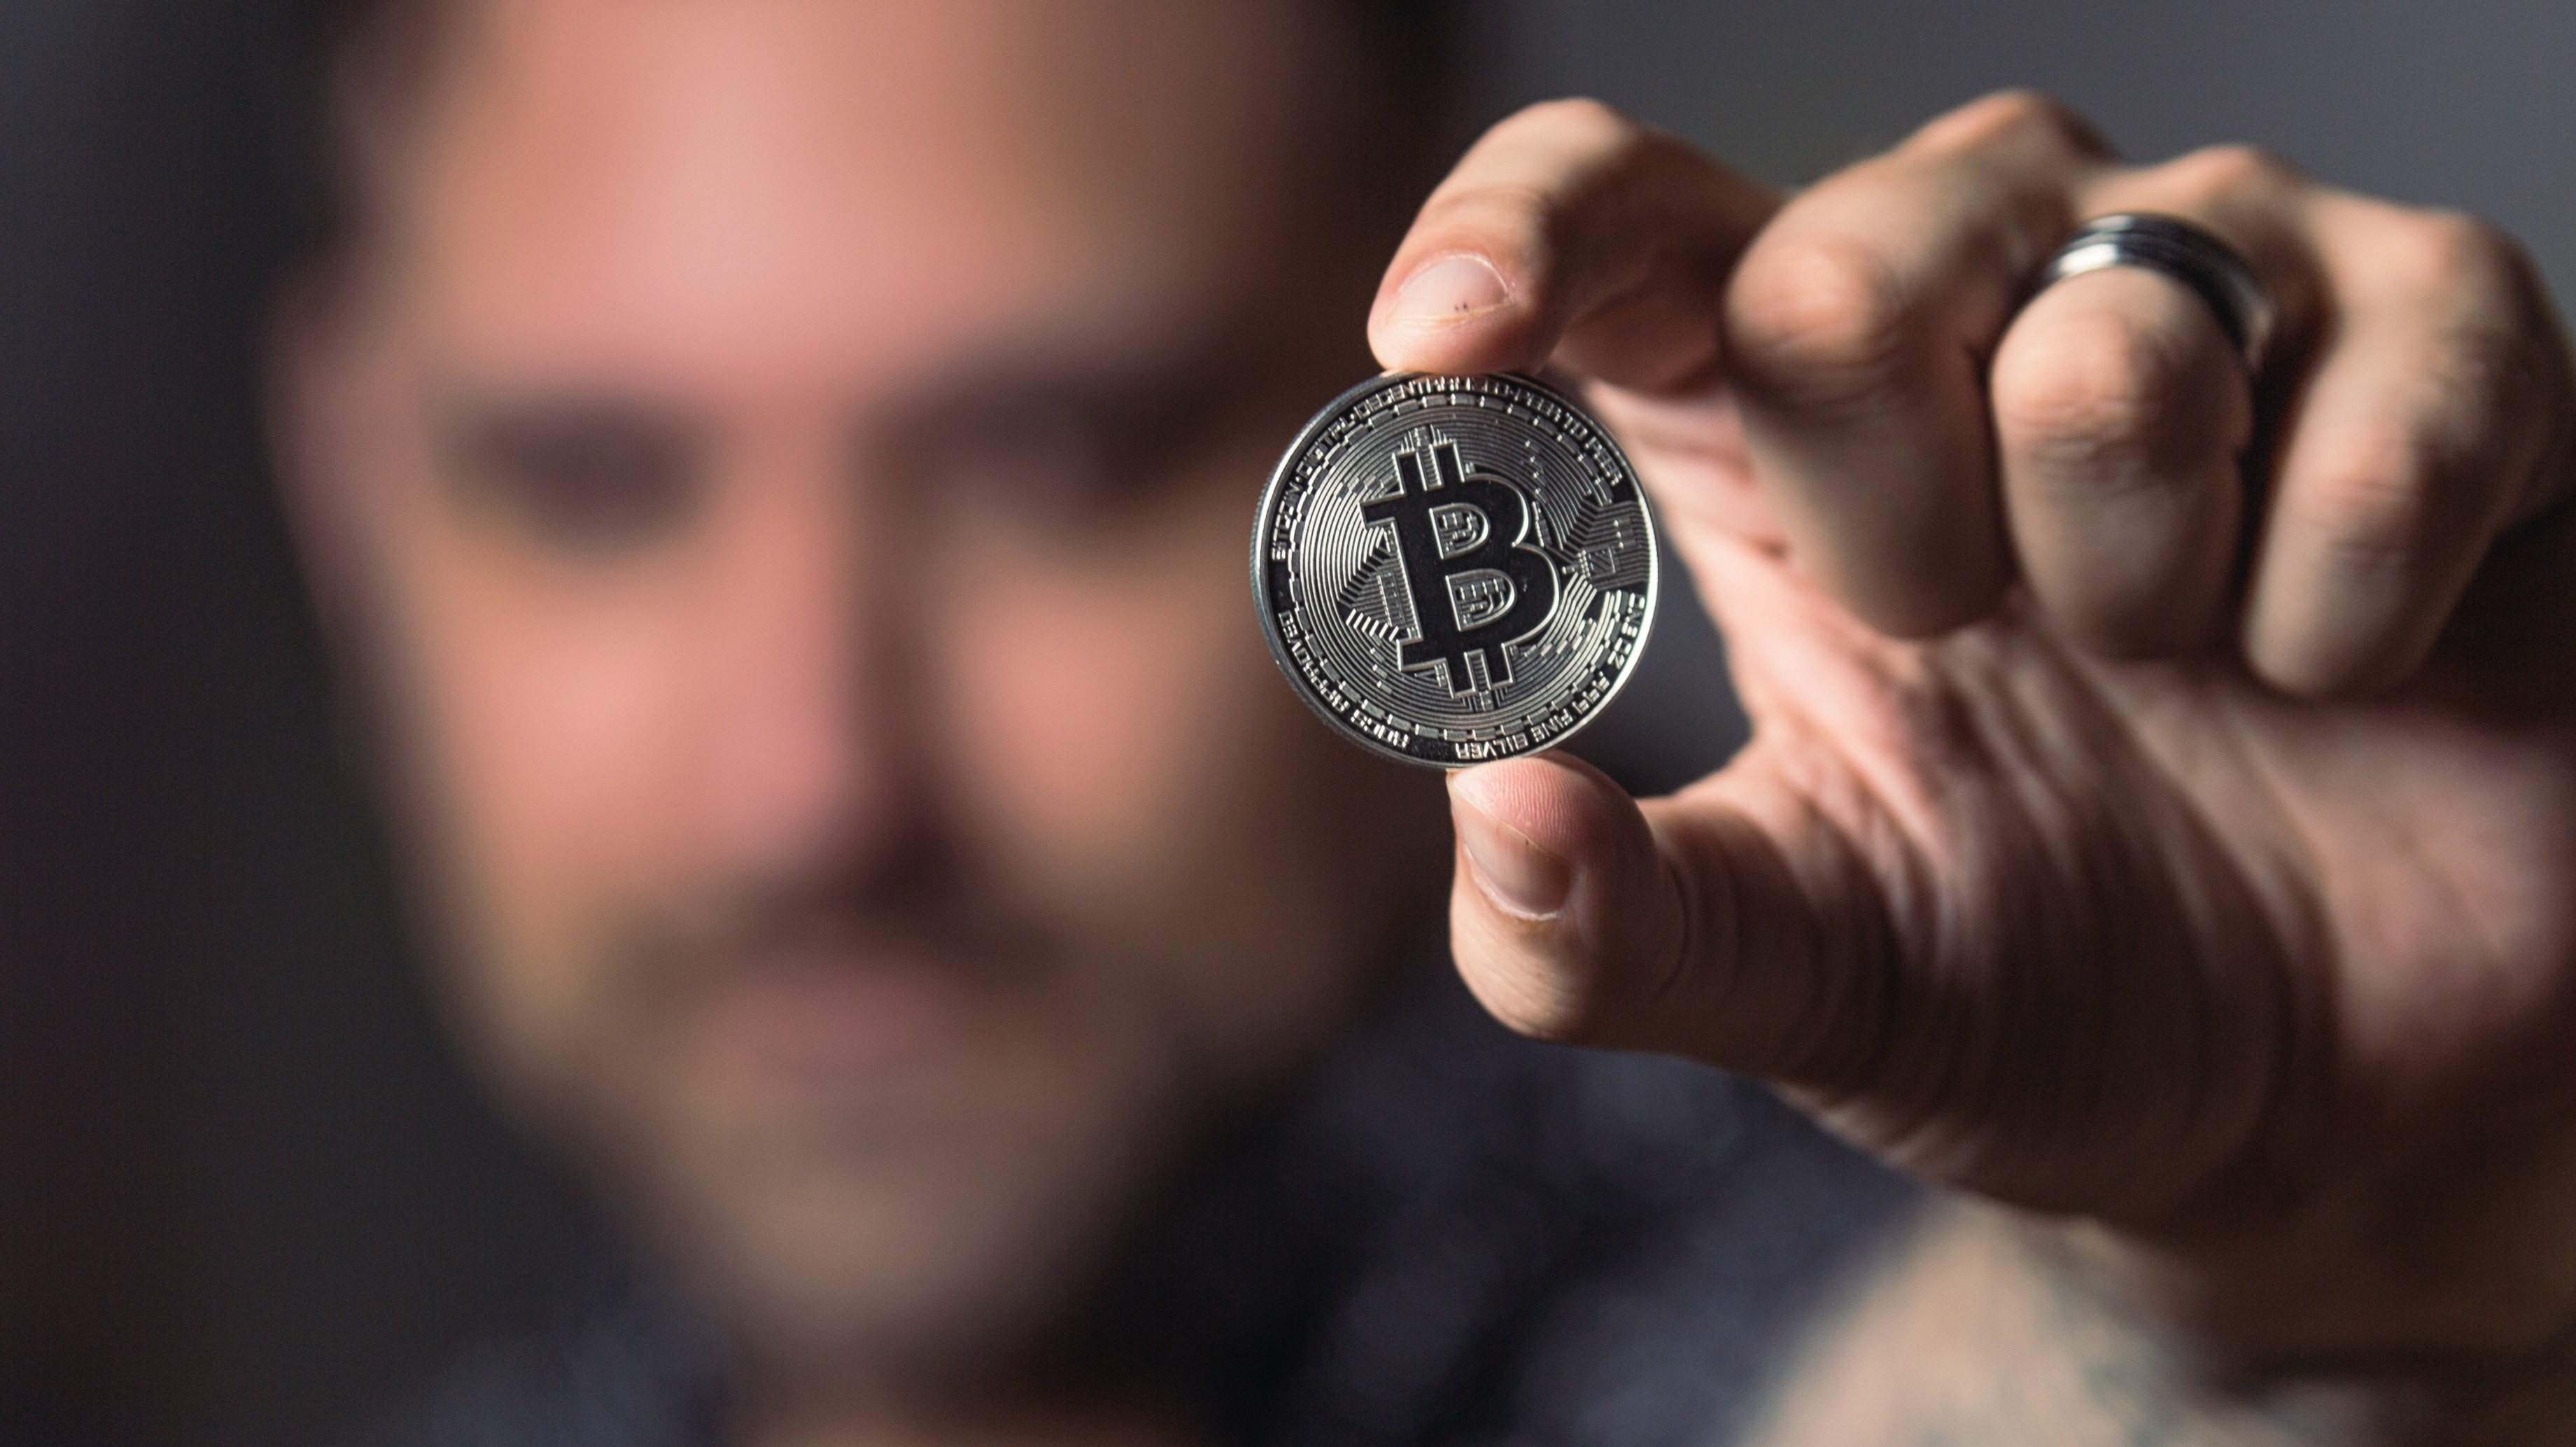 Invest easily in bitcoin using GBTC. It's actually better than buying crypto through Paypal.